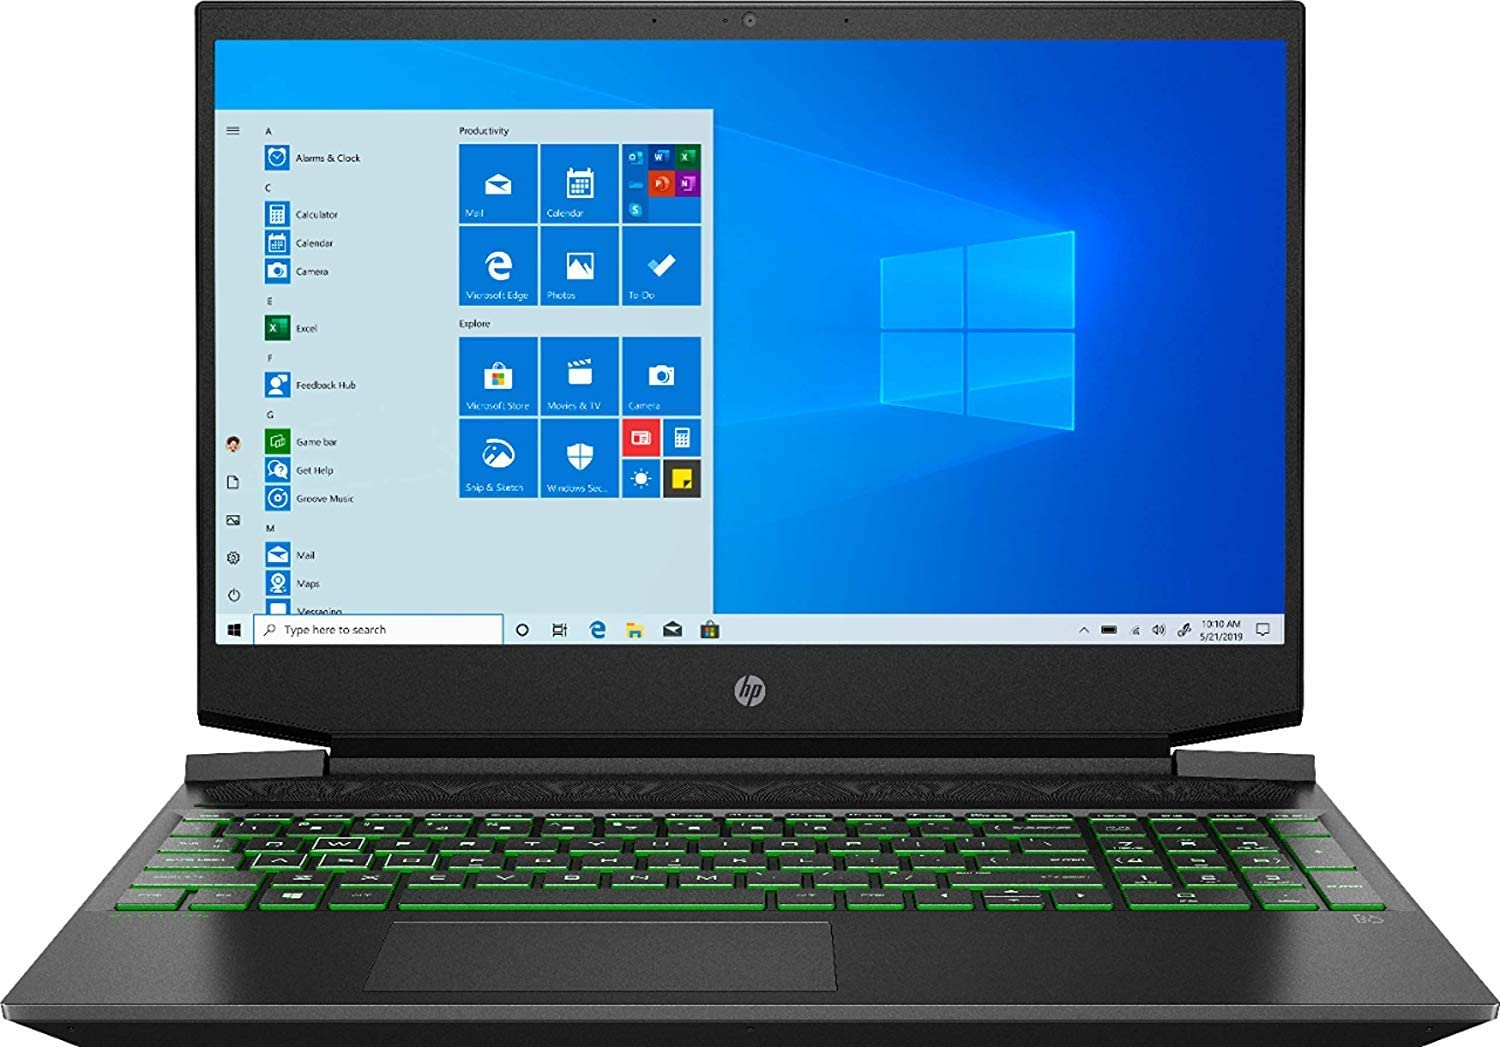 "HP Gaming 15-EC0013DX - 15.6"" FHD - AMD Ryzen 5 3550H - NVIDIA GTX 1050-8GB - 256GB SSD"